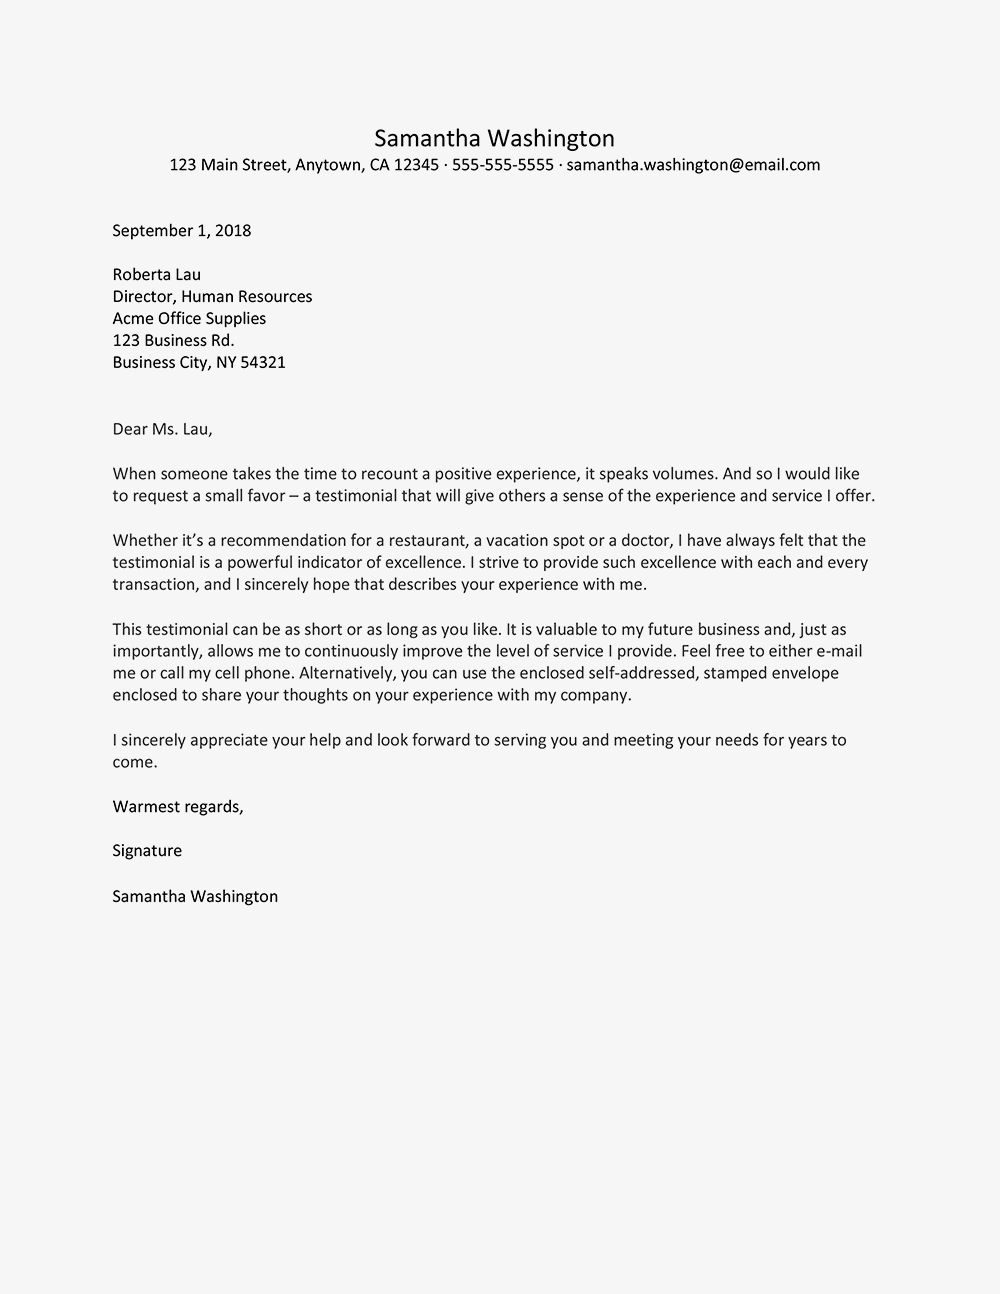 Sample Customer Testimonial Request Letter